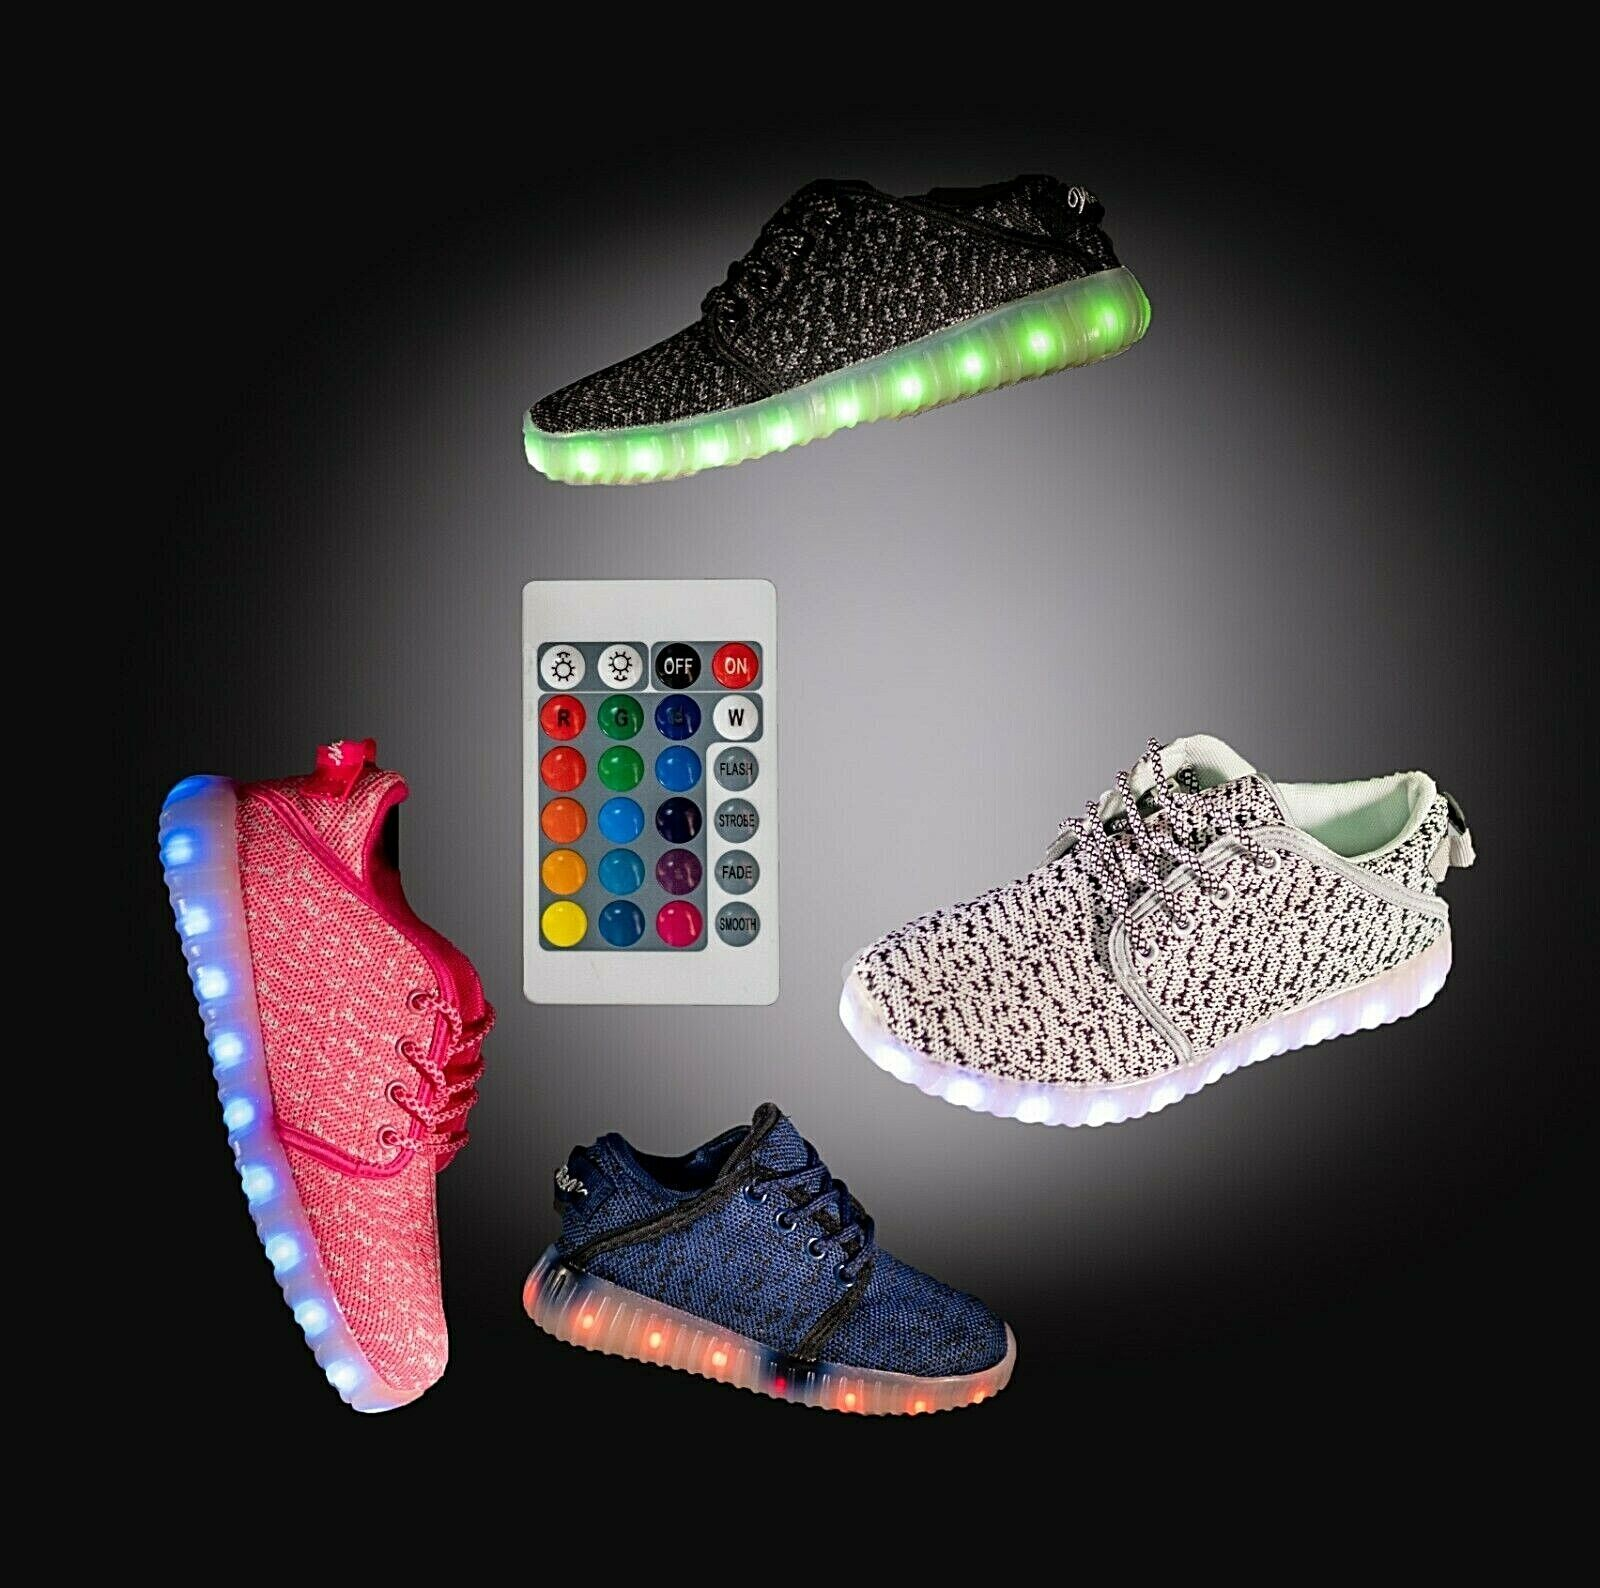 LED Light Up Shoes Sneaker Flashing for Girls Boys Kids and Youth Remote NIB Clothing, Shoes & Accessories